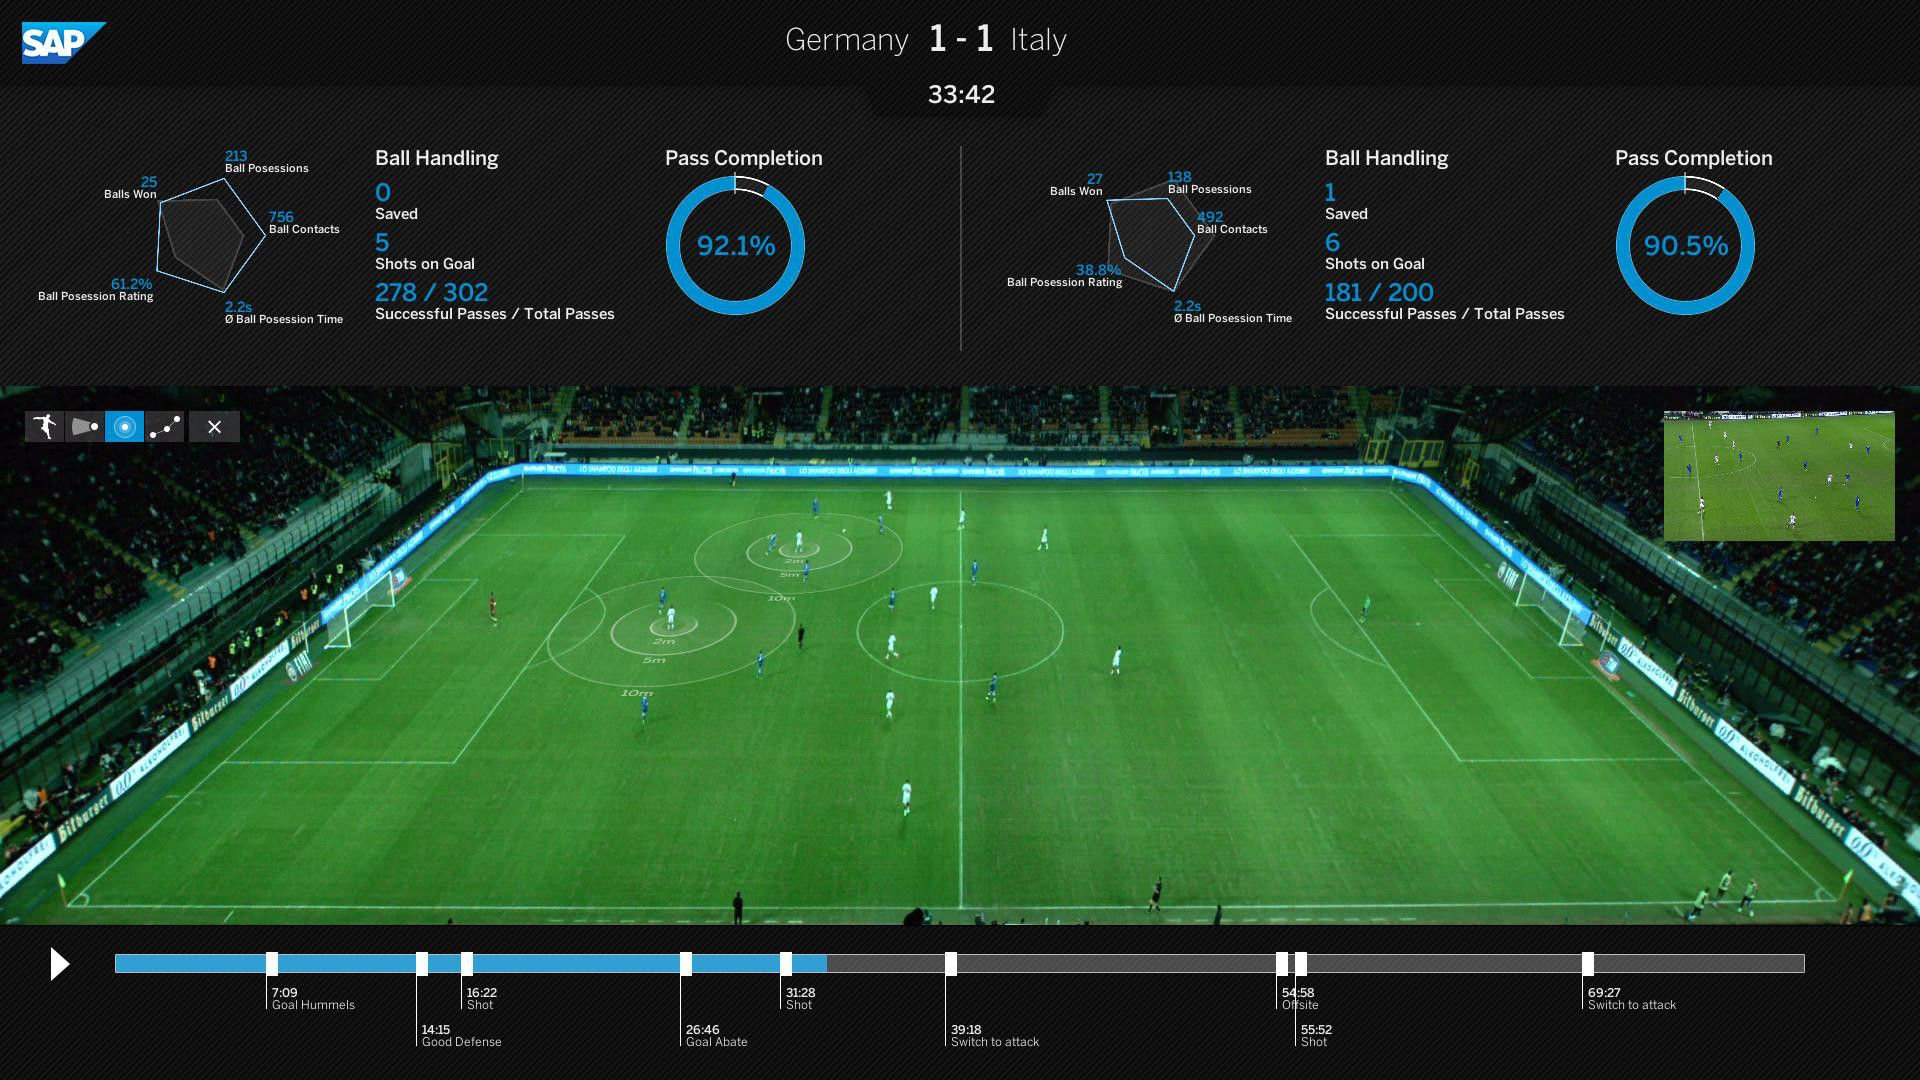 Sap It Was Our Big Data Software Wot Won It For Germany